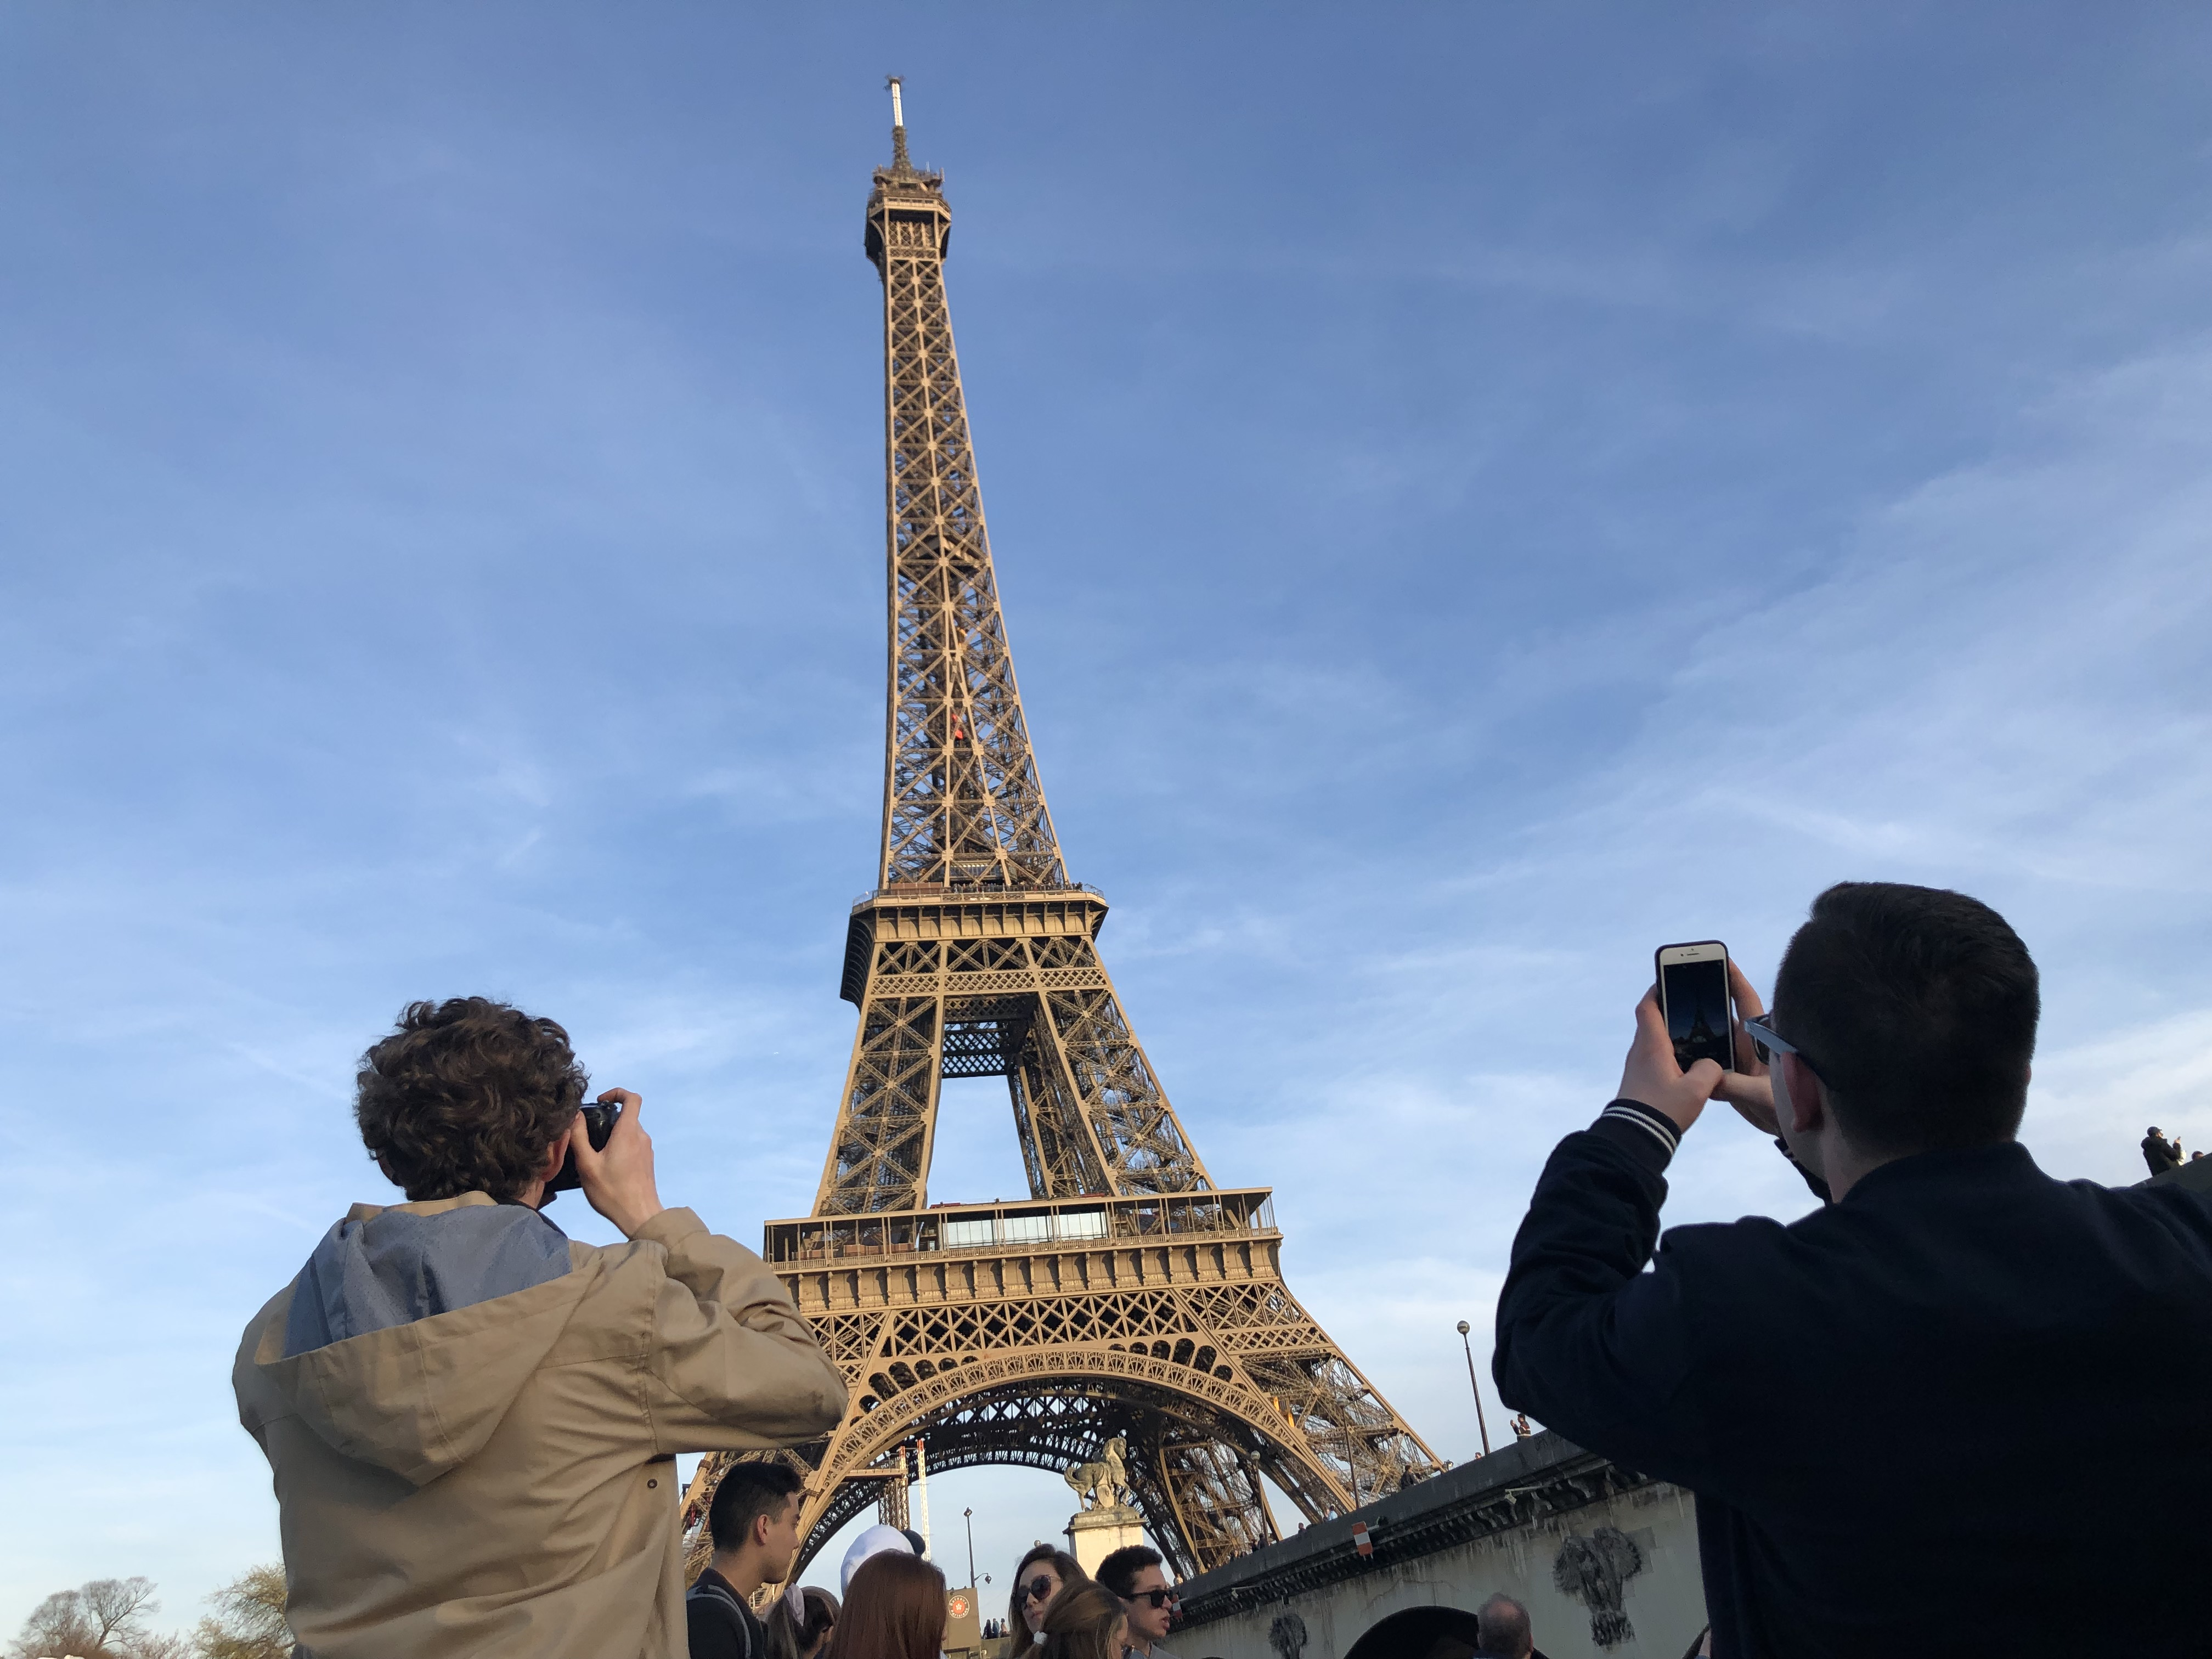 Students taking a picture of the Eiffel Tower